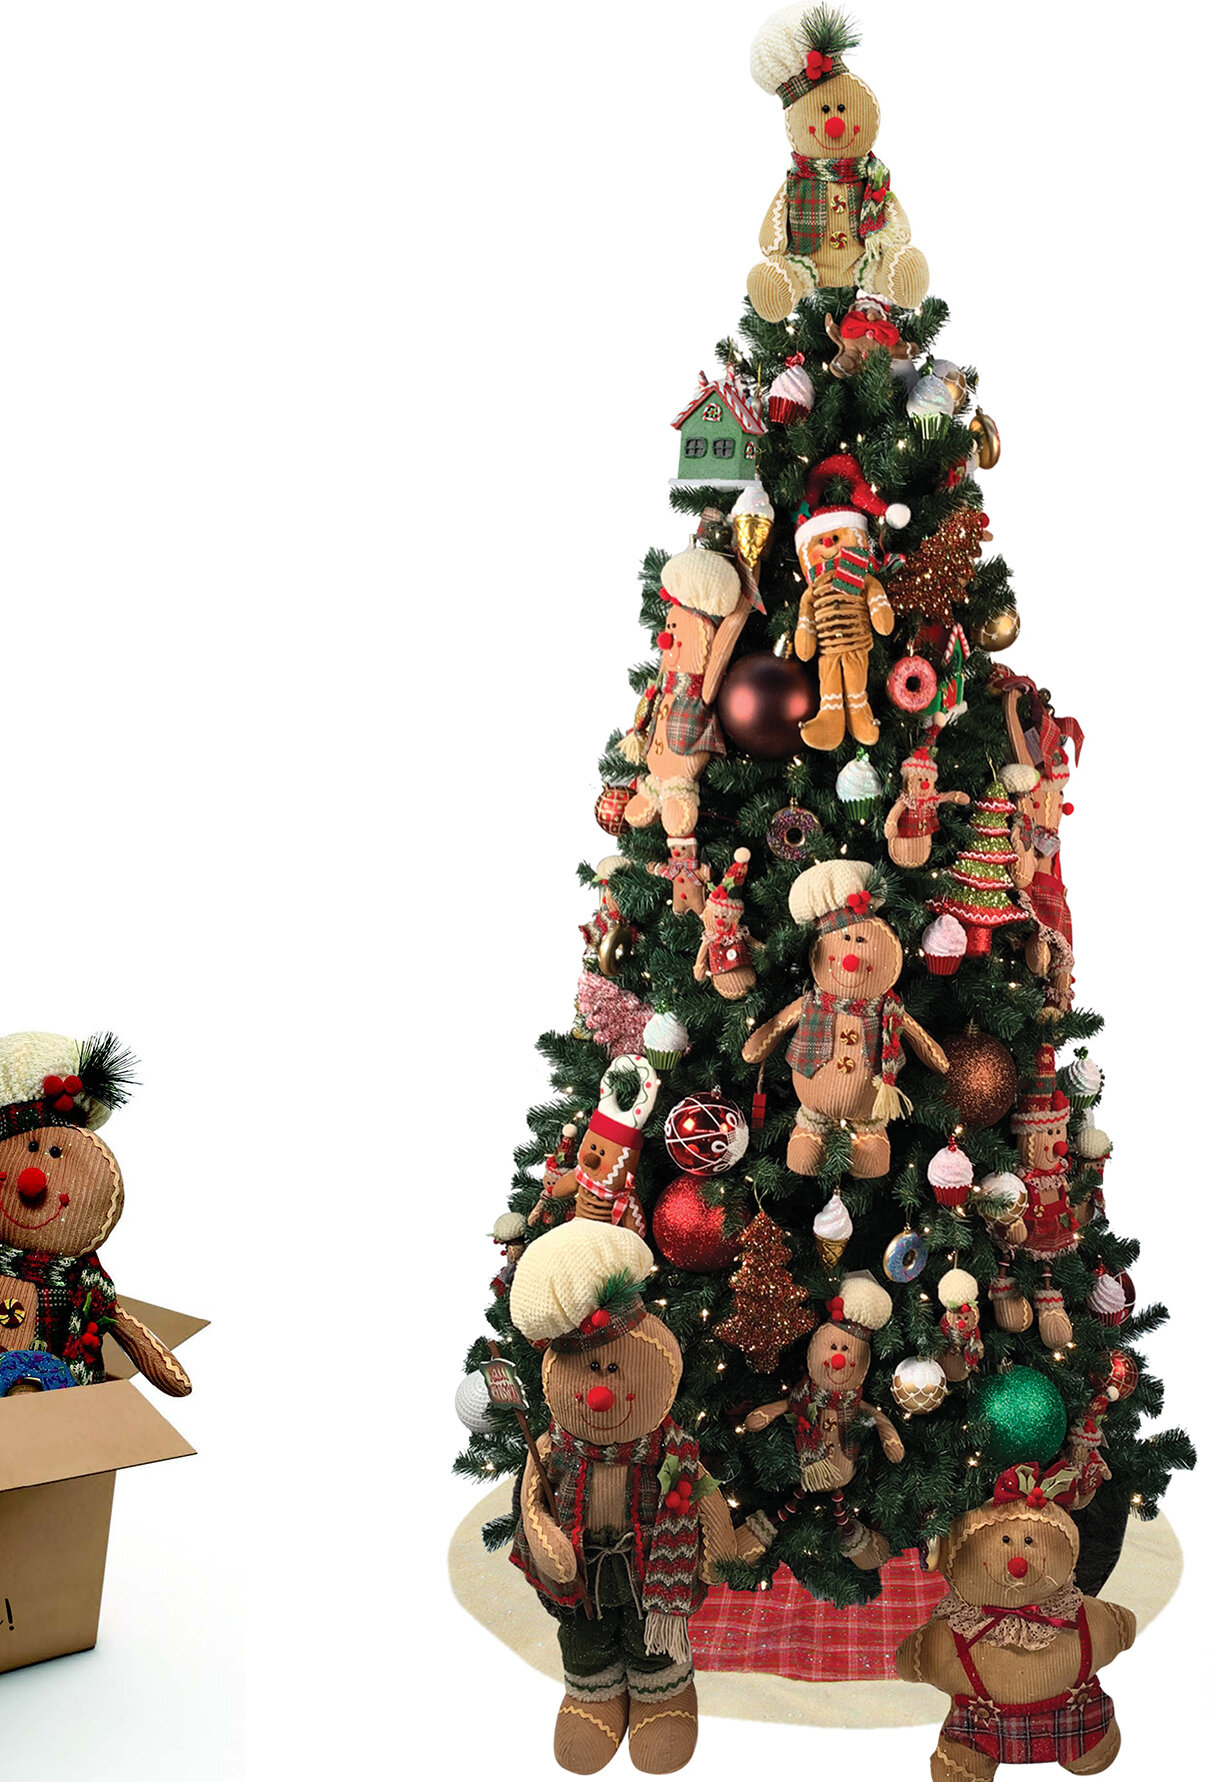 The Holiday Aisle Gingerbread Decoration 7 5 Green Pine Artificial Christmas Tree With 550 Clear And White Lights Wayfair